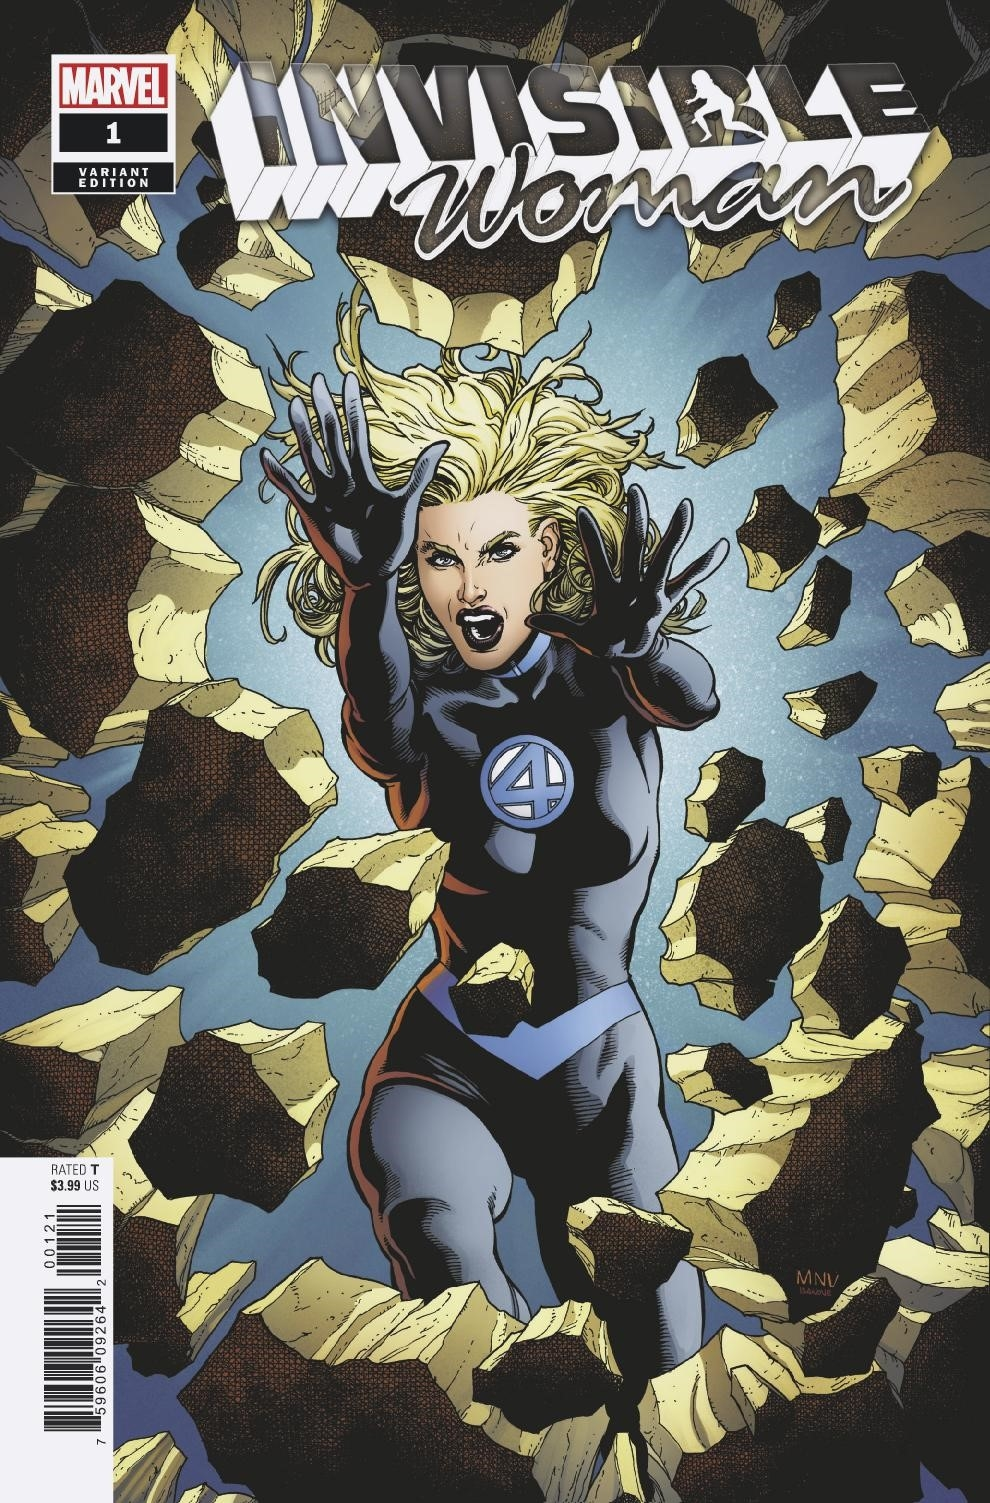 INVISIBLE WOMAN #1 (OF 5) MCNIVEN VAR